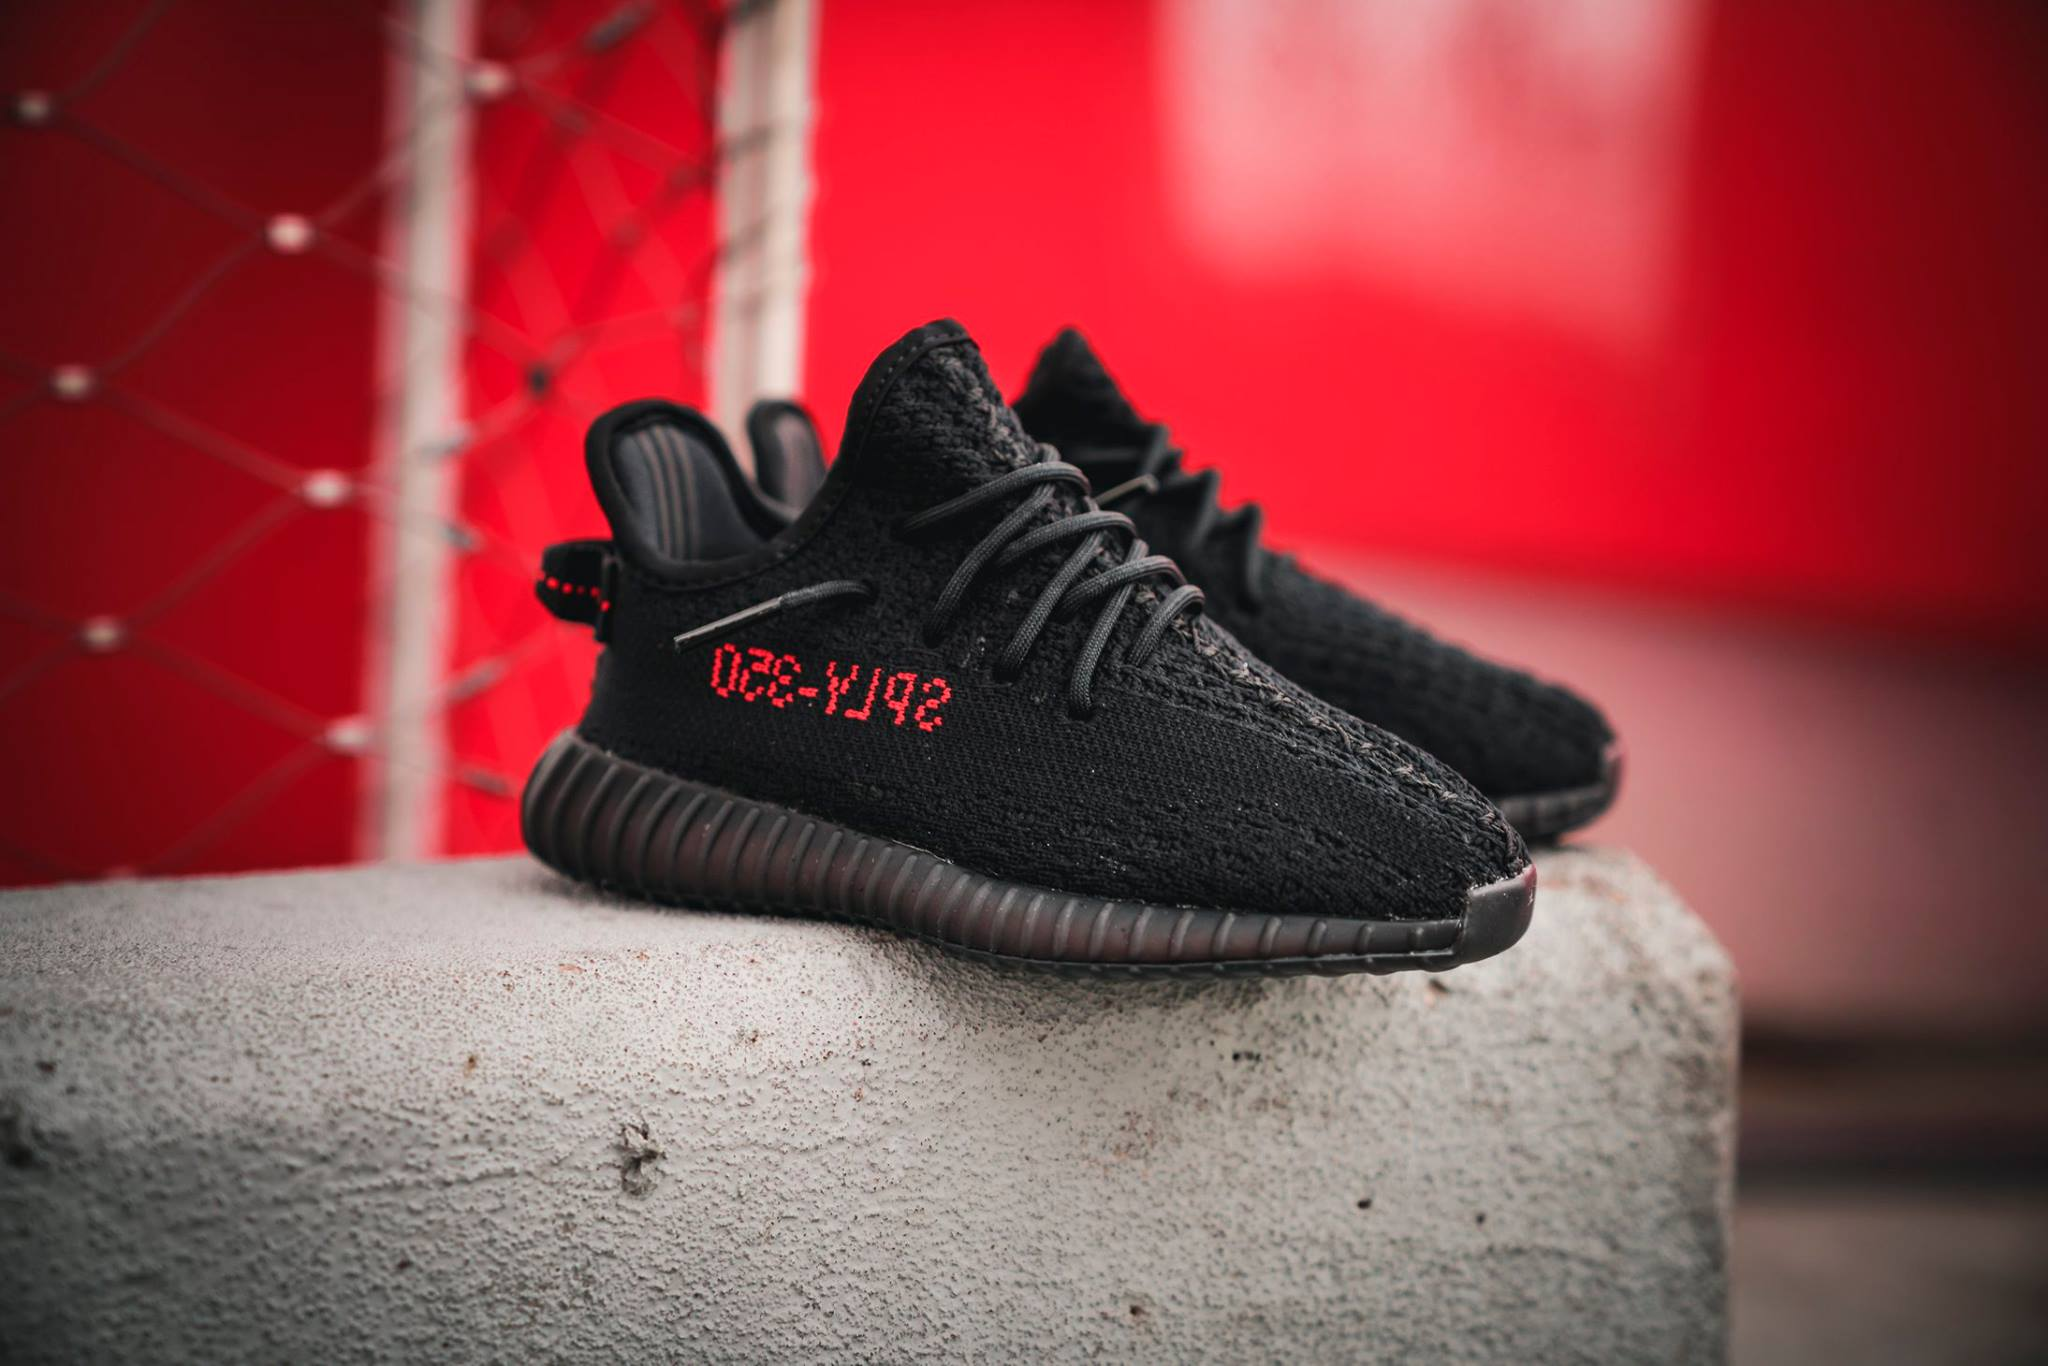 adidas YEEZY BOOST 350 V2 Core Black Red CP9652 1